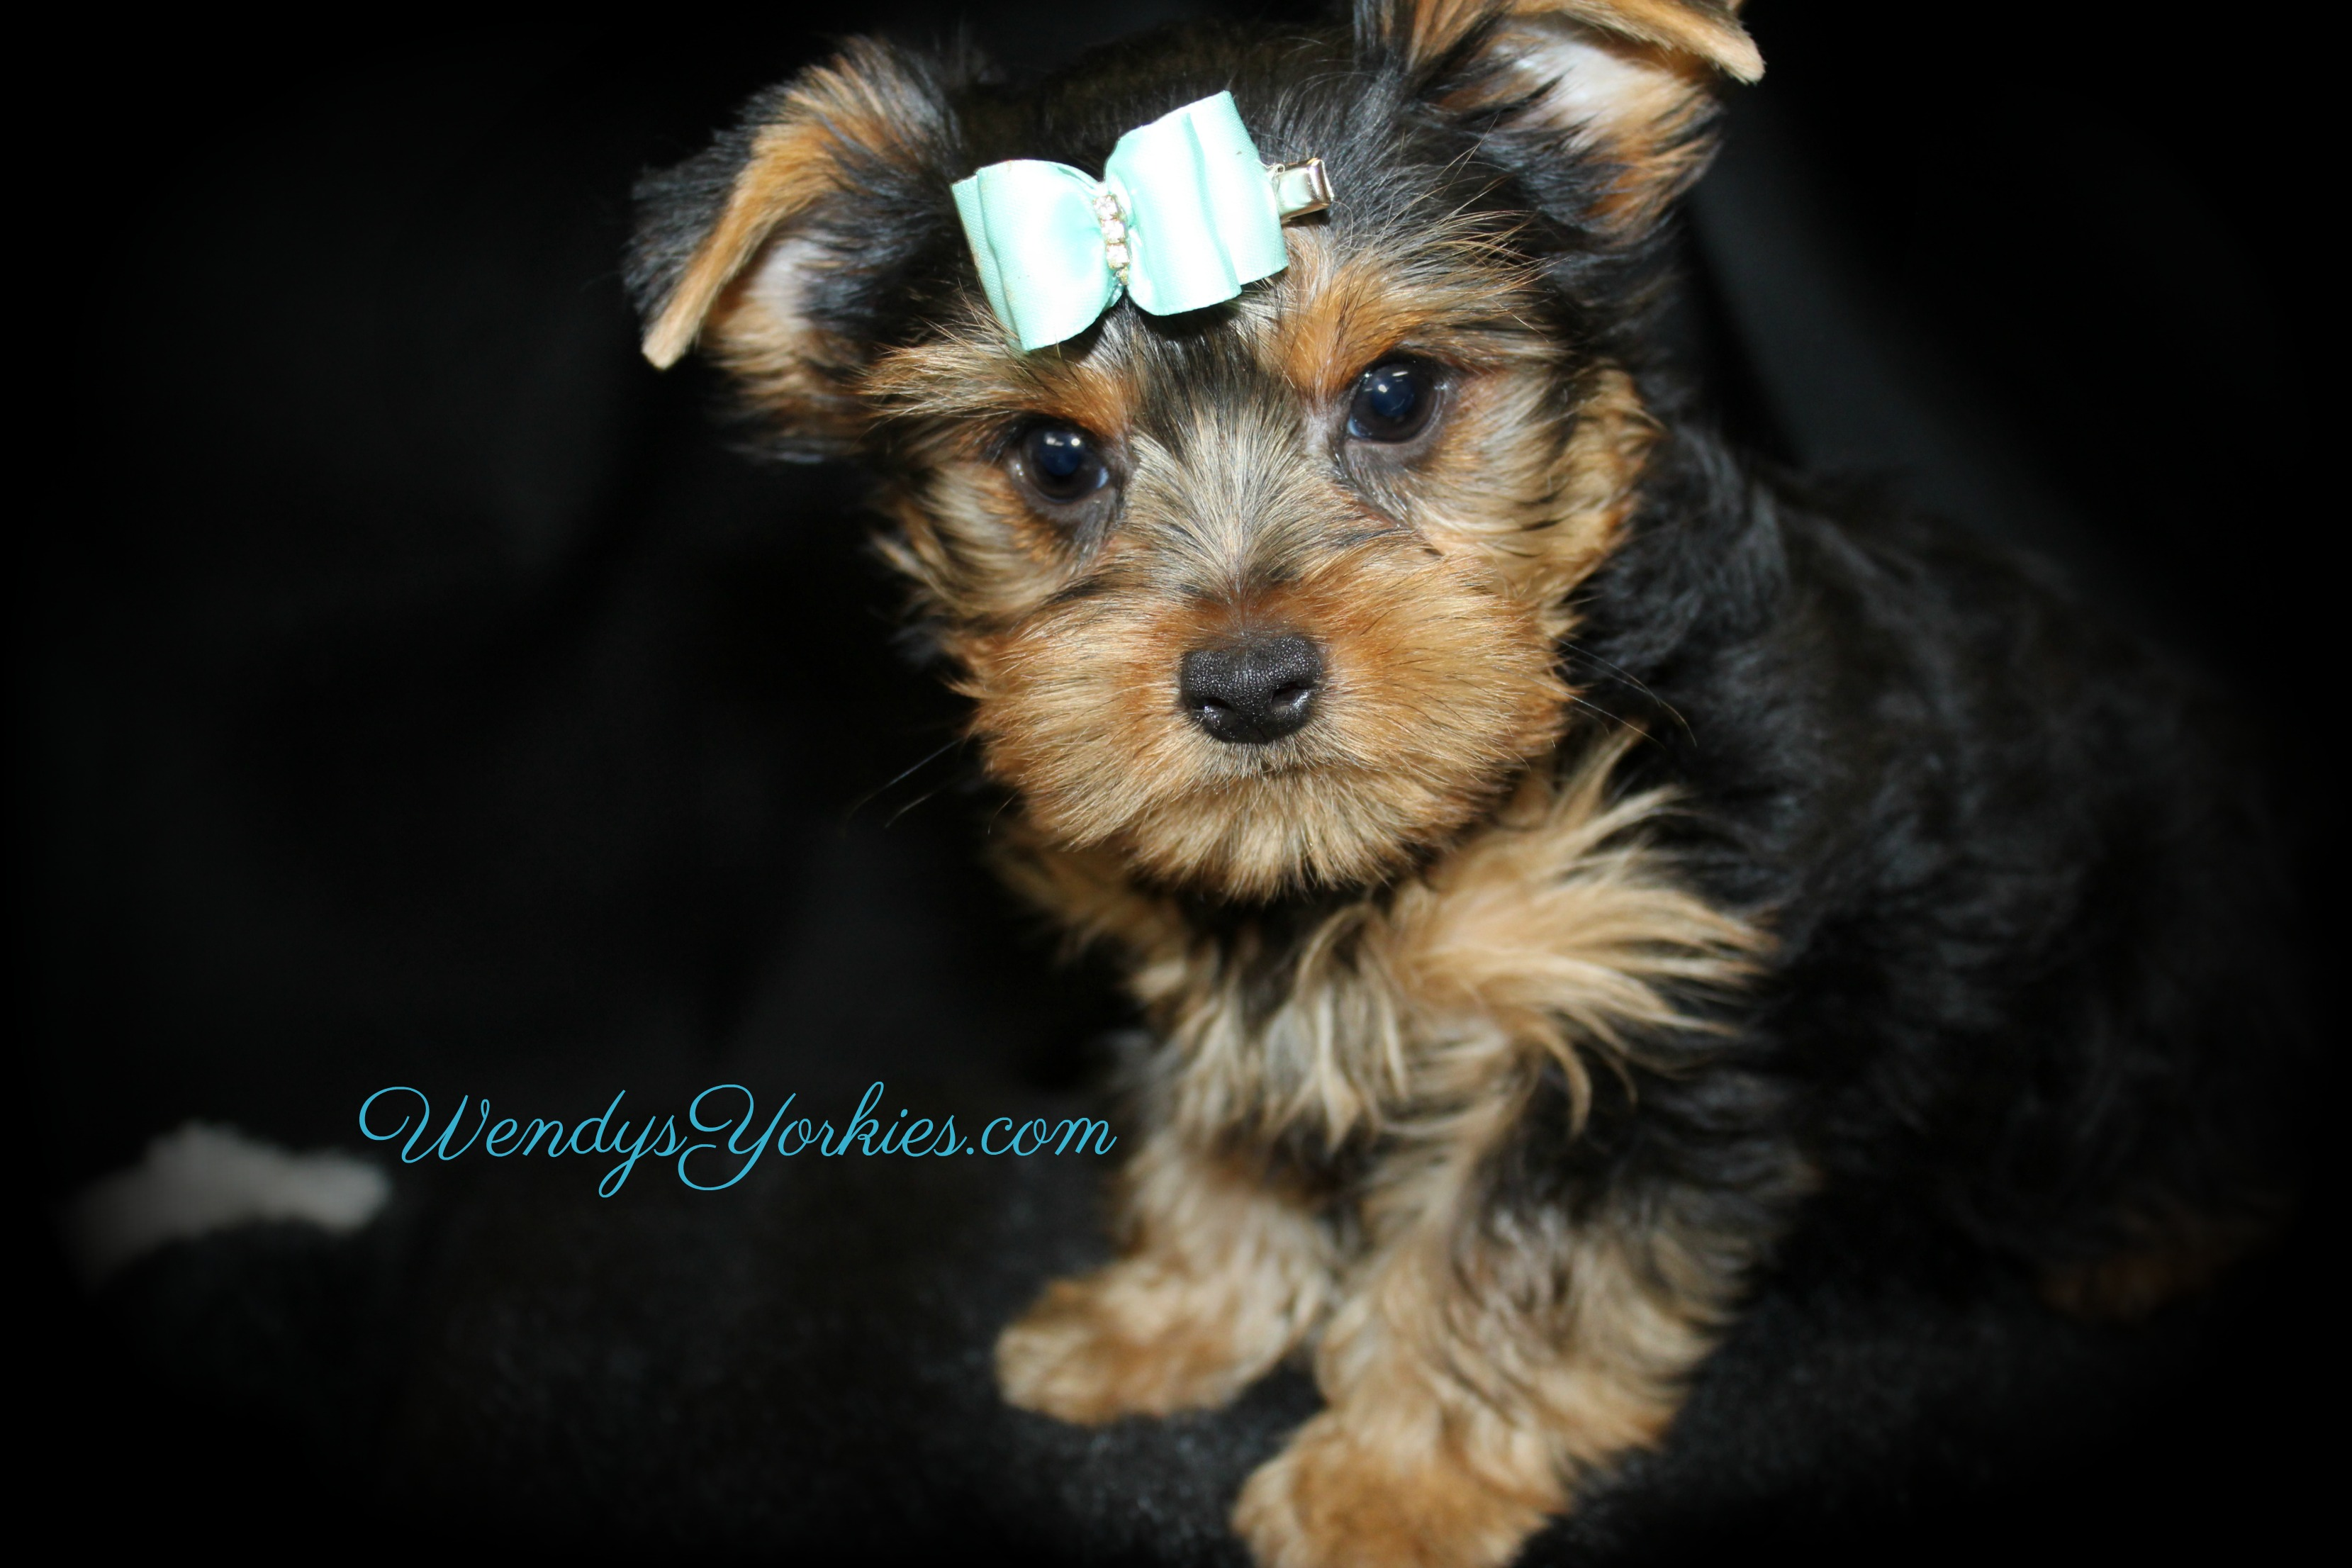 Male Yorkie puppy for sale, Harley tm1, WendysYorkies.com